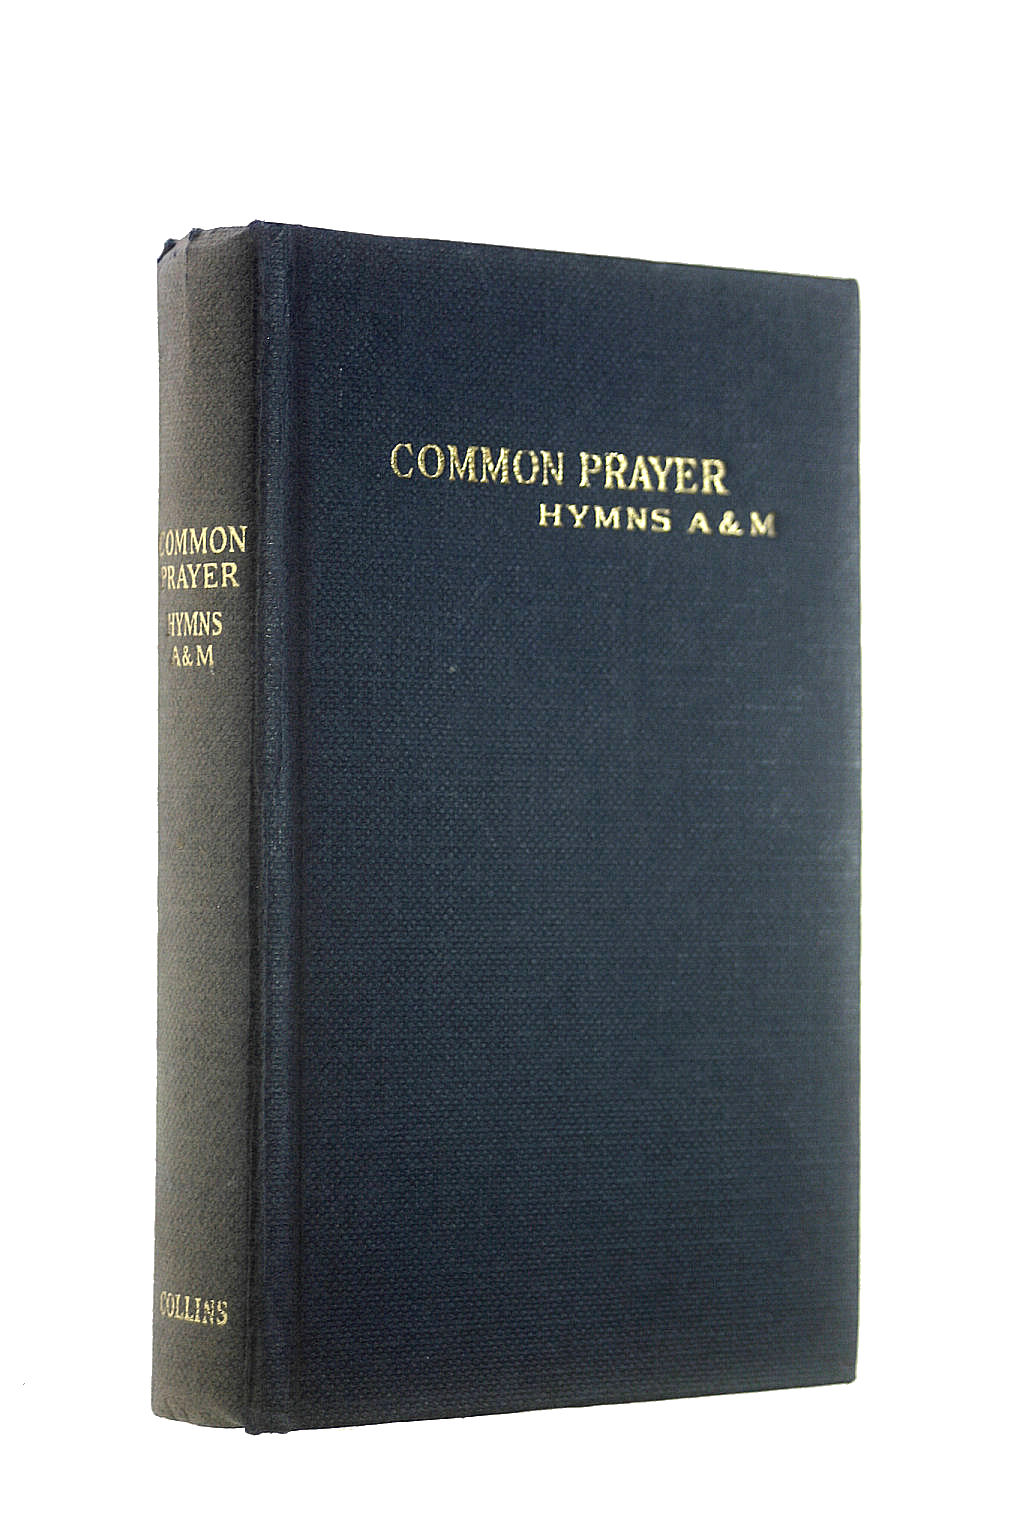 Image for The book of common prayer and administration of the sacraments and other rites and ceremonies of the church according to the use of the church of england together with psalter, psalms of David